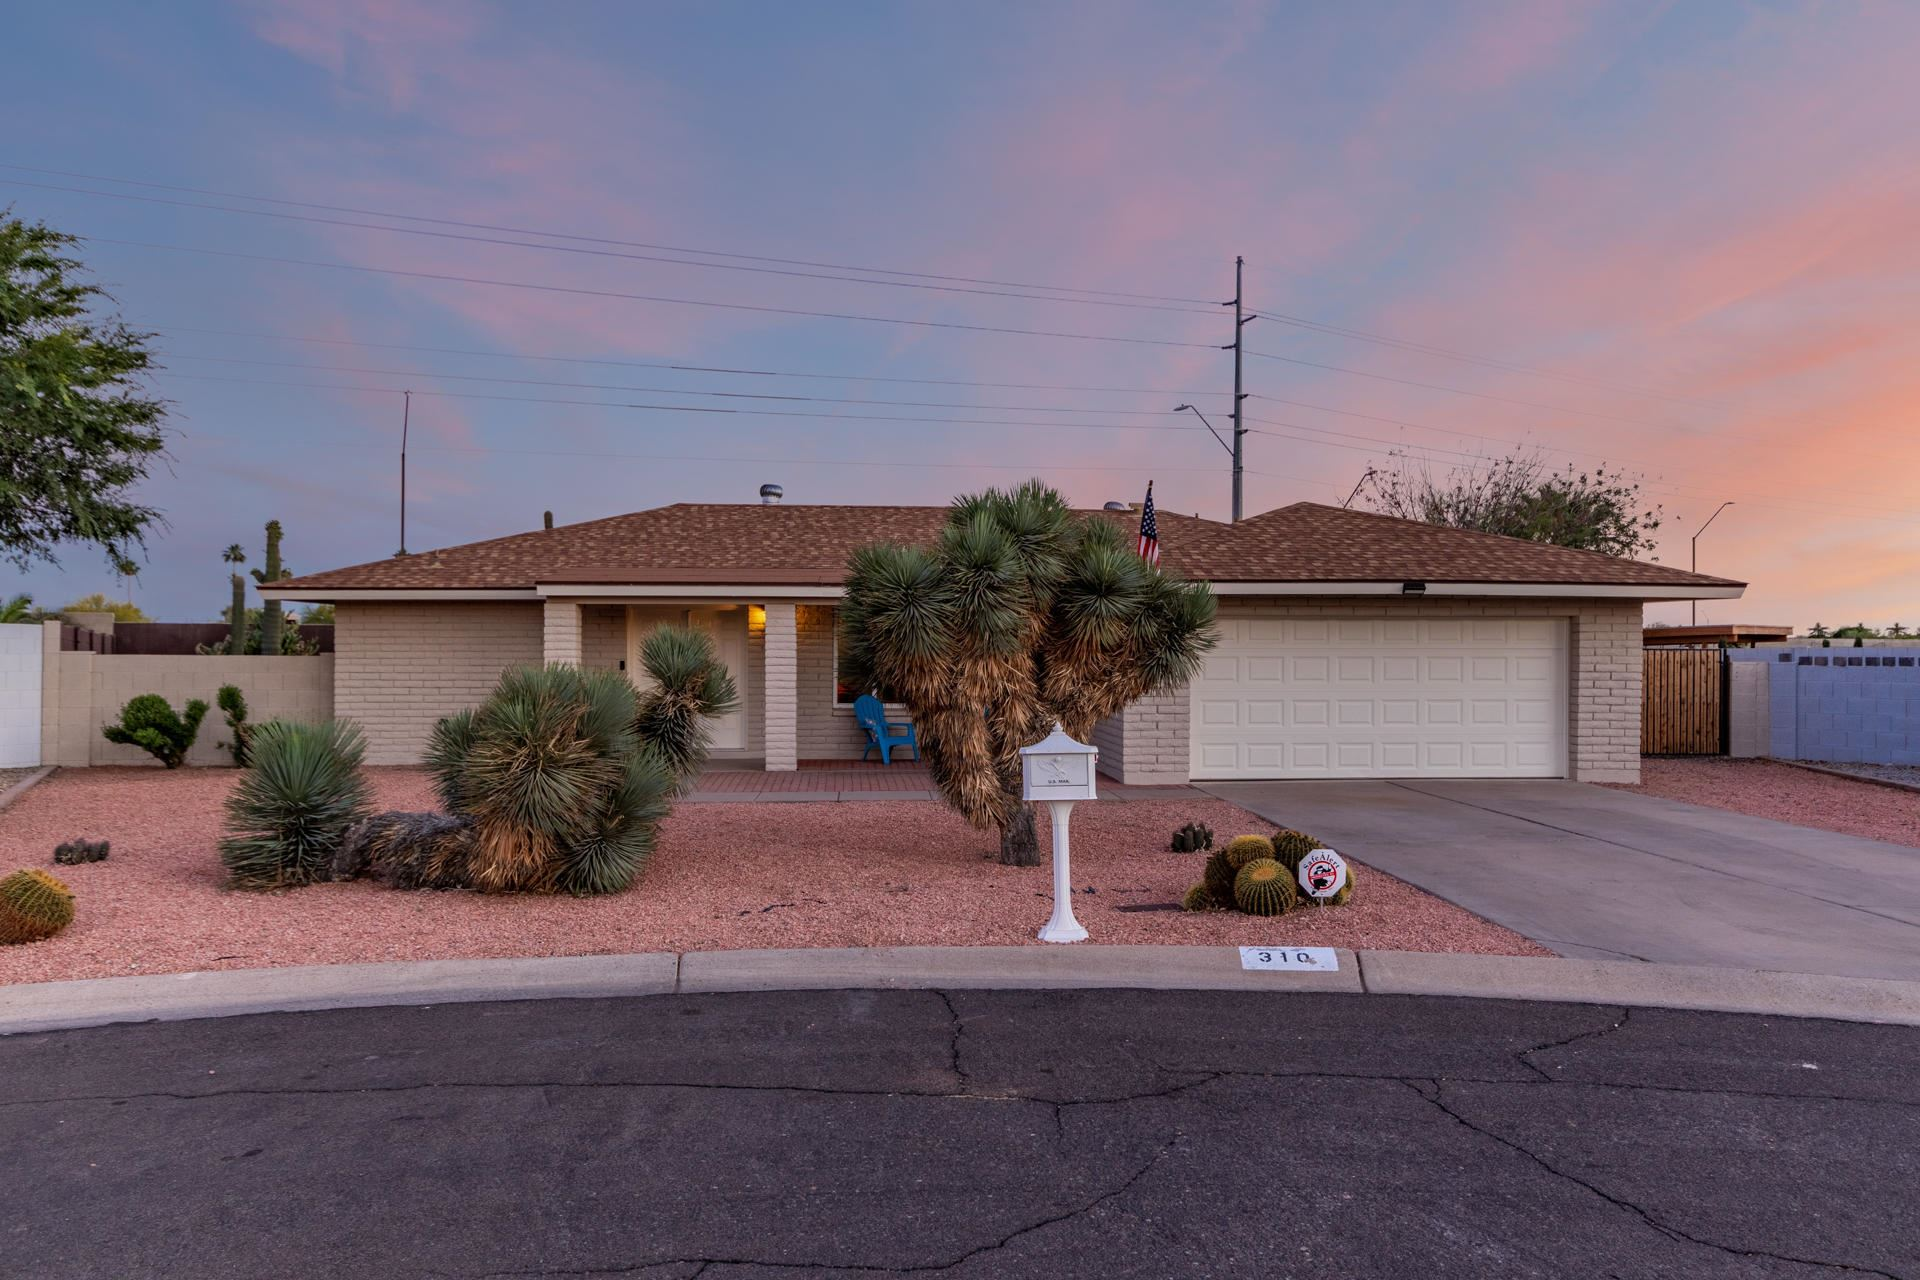 Photo of 310 S HACIENDA Circle, Litchfield Park, AZ 85340 (MLS # 6231904)